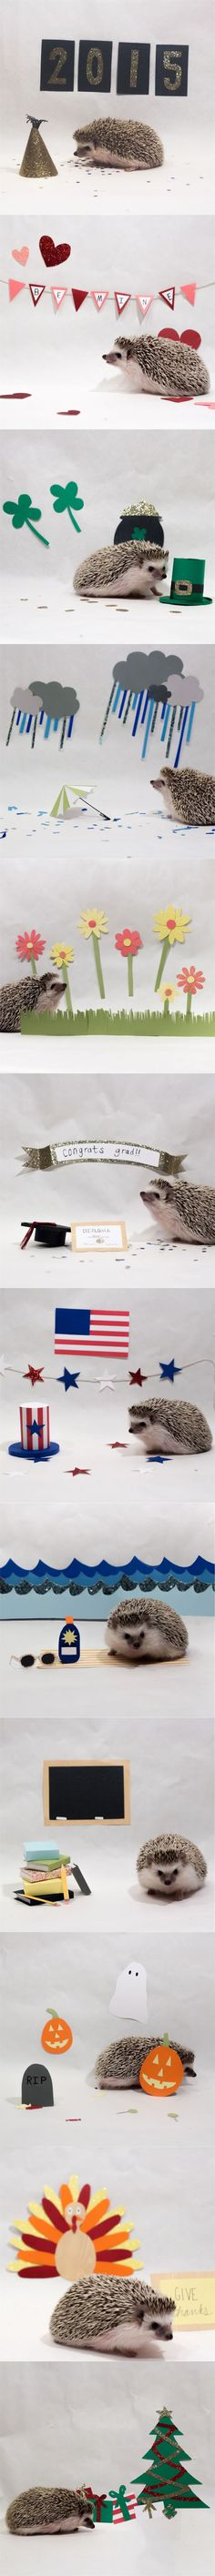 I-took-care-of-my-roommate's-hedgehog-over-Christmas-break-and-decided-to-make-a-2015-calendar-for-her.-fun,funny,lol,meme,humor,amusing,laugh,picture,video,movie,girl,comic